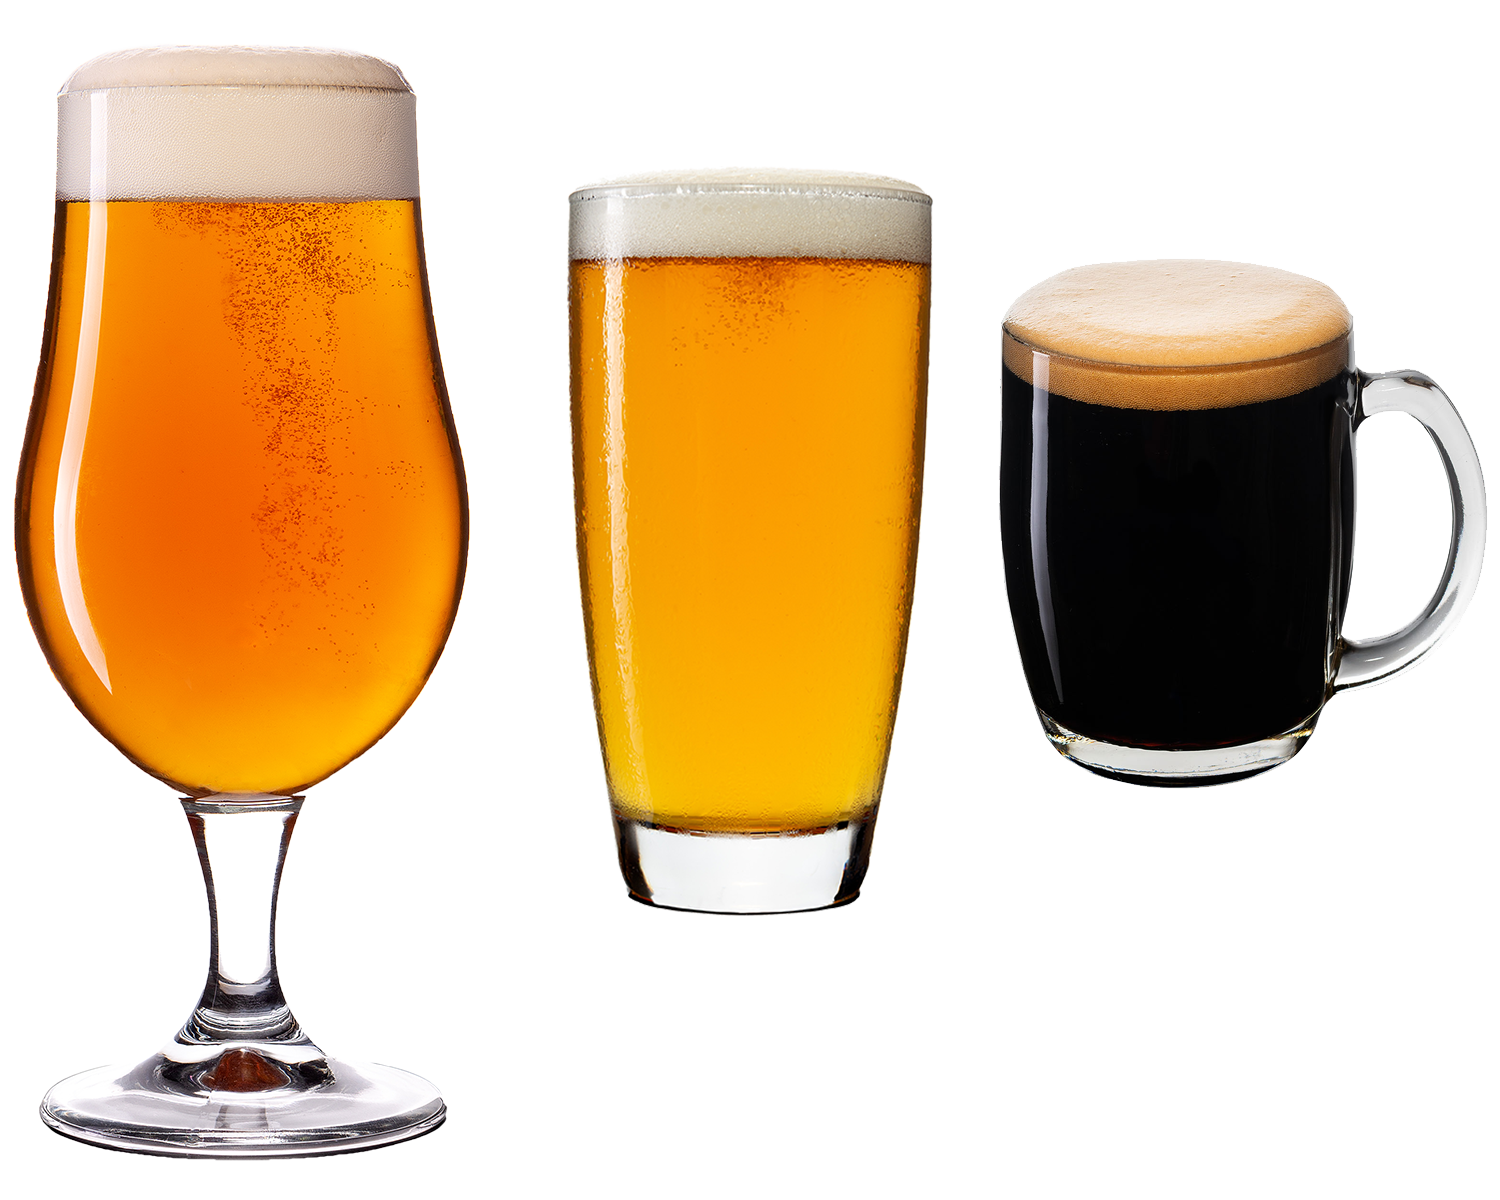 THE GLASS - Craft beer is best drunk from a glass. Why?1. You will maximise the taste and aroma, as 70% of the taste comes from the smell alone. Drinking from the can or bottle minimises the release of these aromas.2. A glass will assist in head retention, while carbonation (often being released from nucleation points at the bottom of the glass) will provide greater mouth feel.3. We eat and drink with our eyes. Drinking from a glass allows your visual senses to be stimulated, which will enhance your sense of taste, smell and flavour.source: www.beercartel.com.au